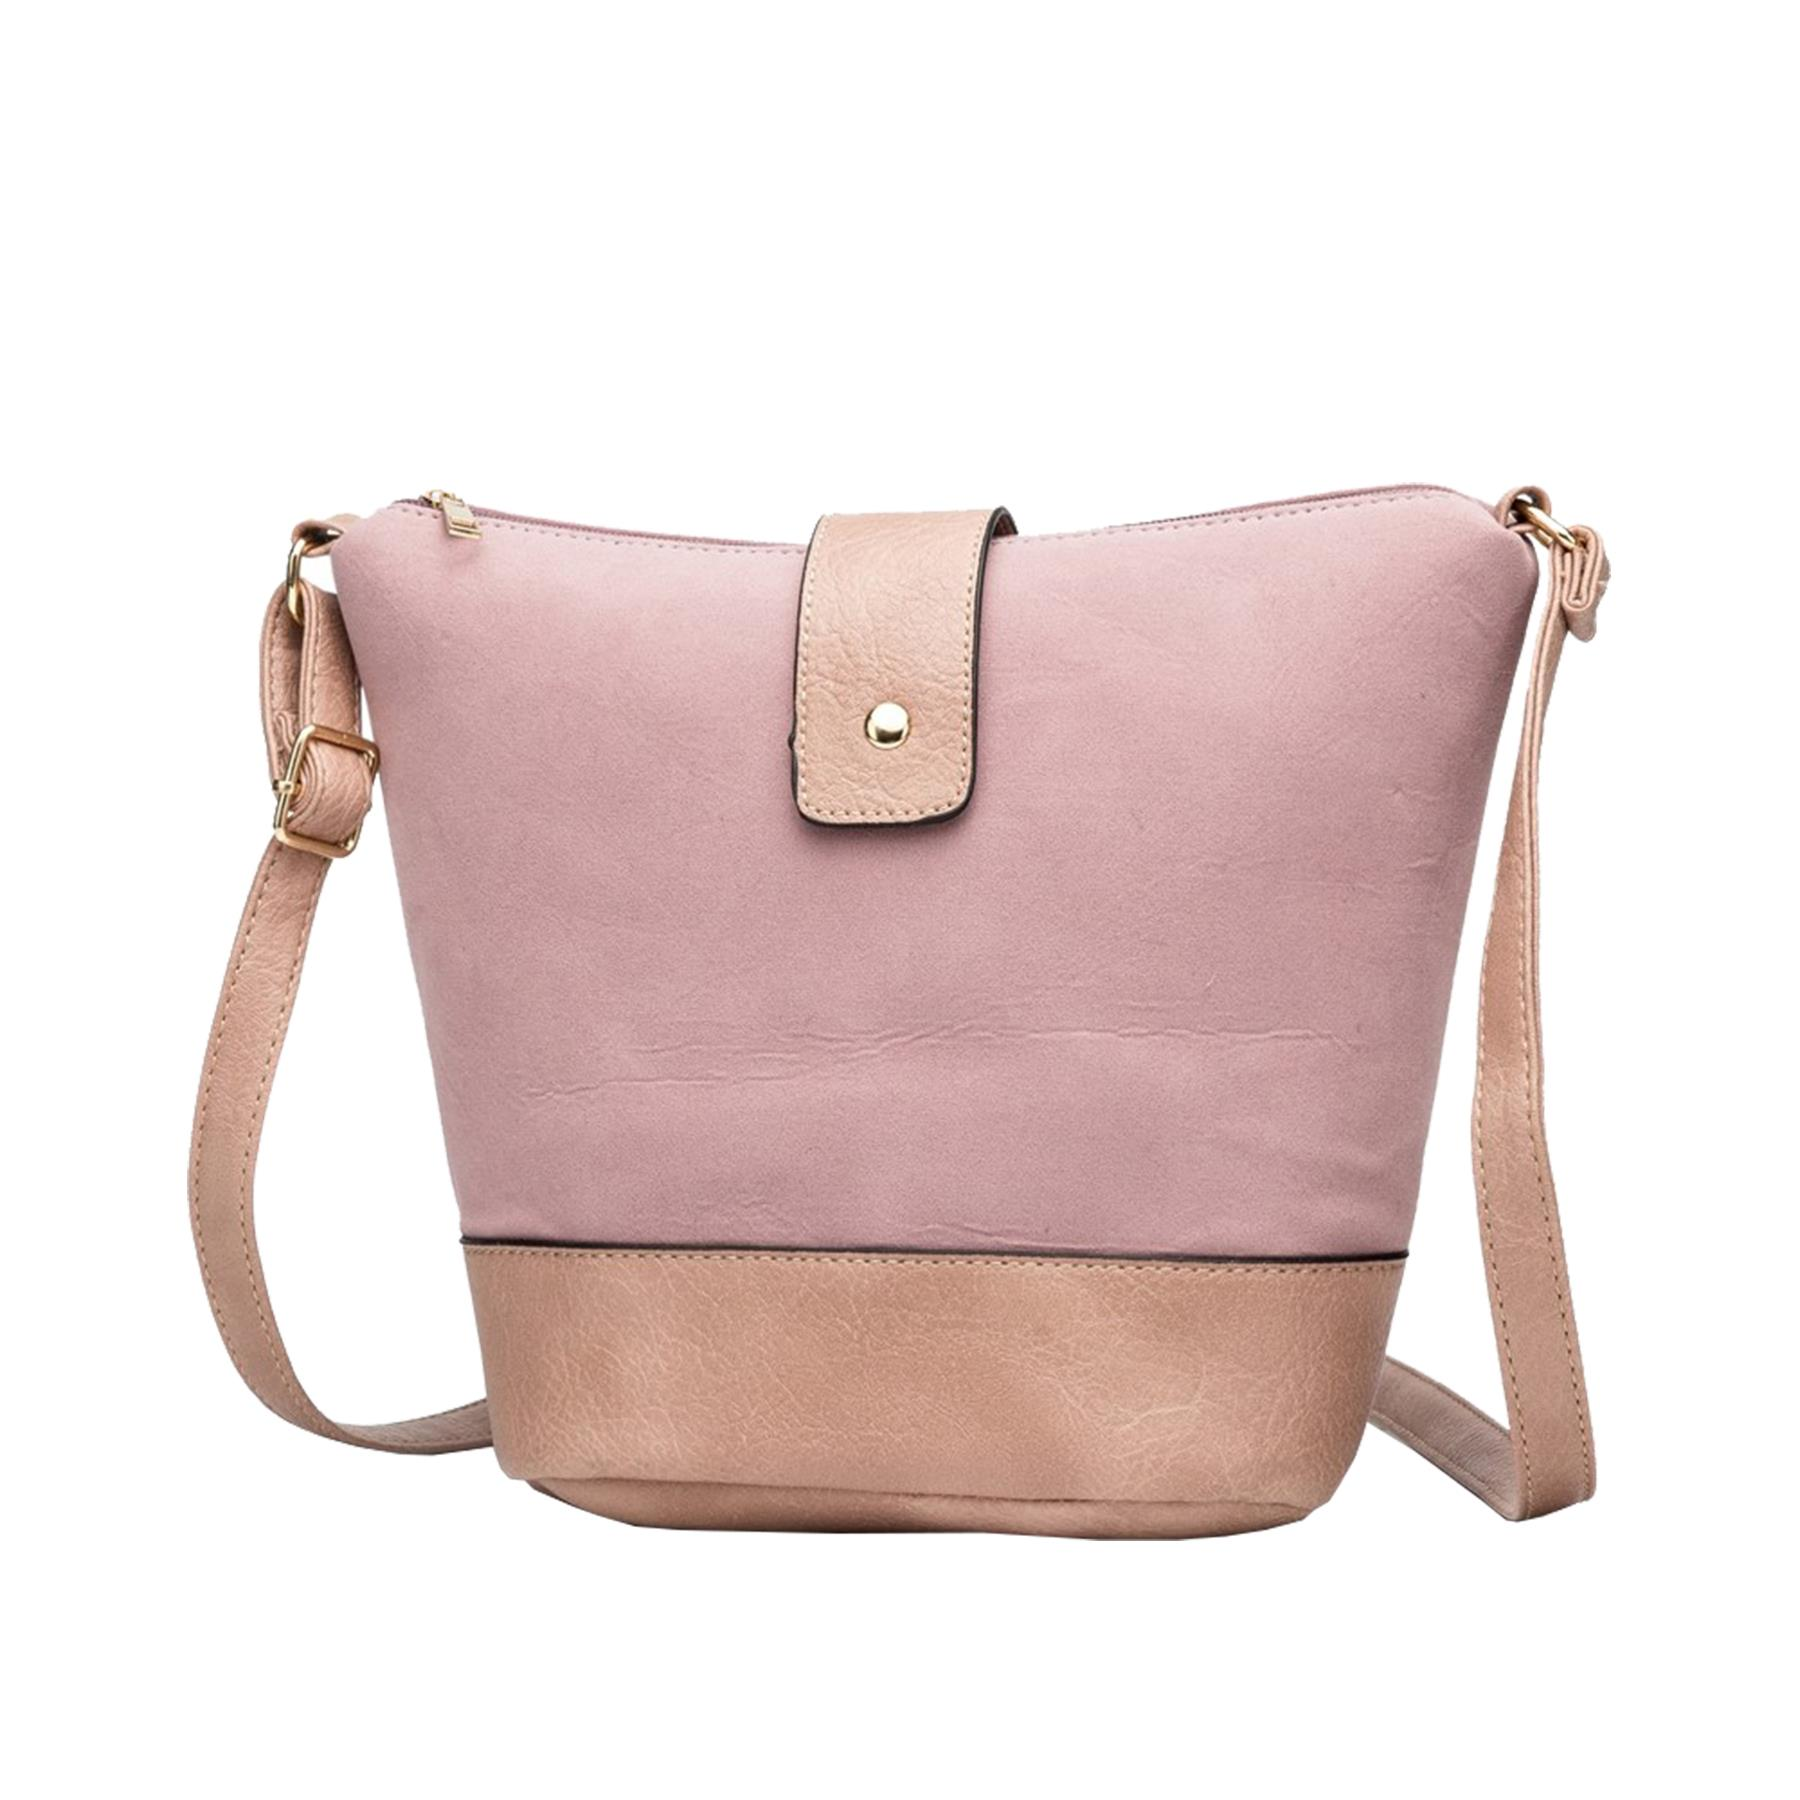 New-Ladies-Two-Toned-Faux-Leather-Fashion-Shoulder-Cross-Body-Bag thumbnail 9